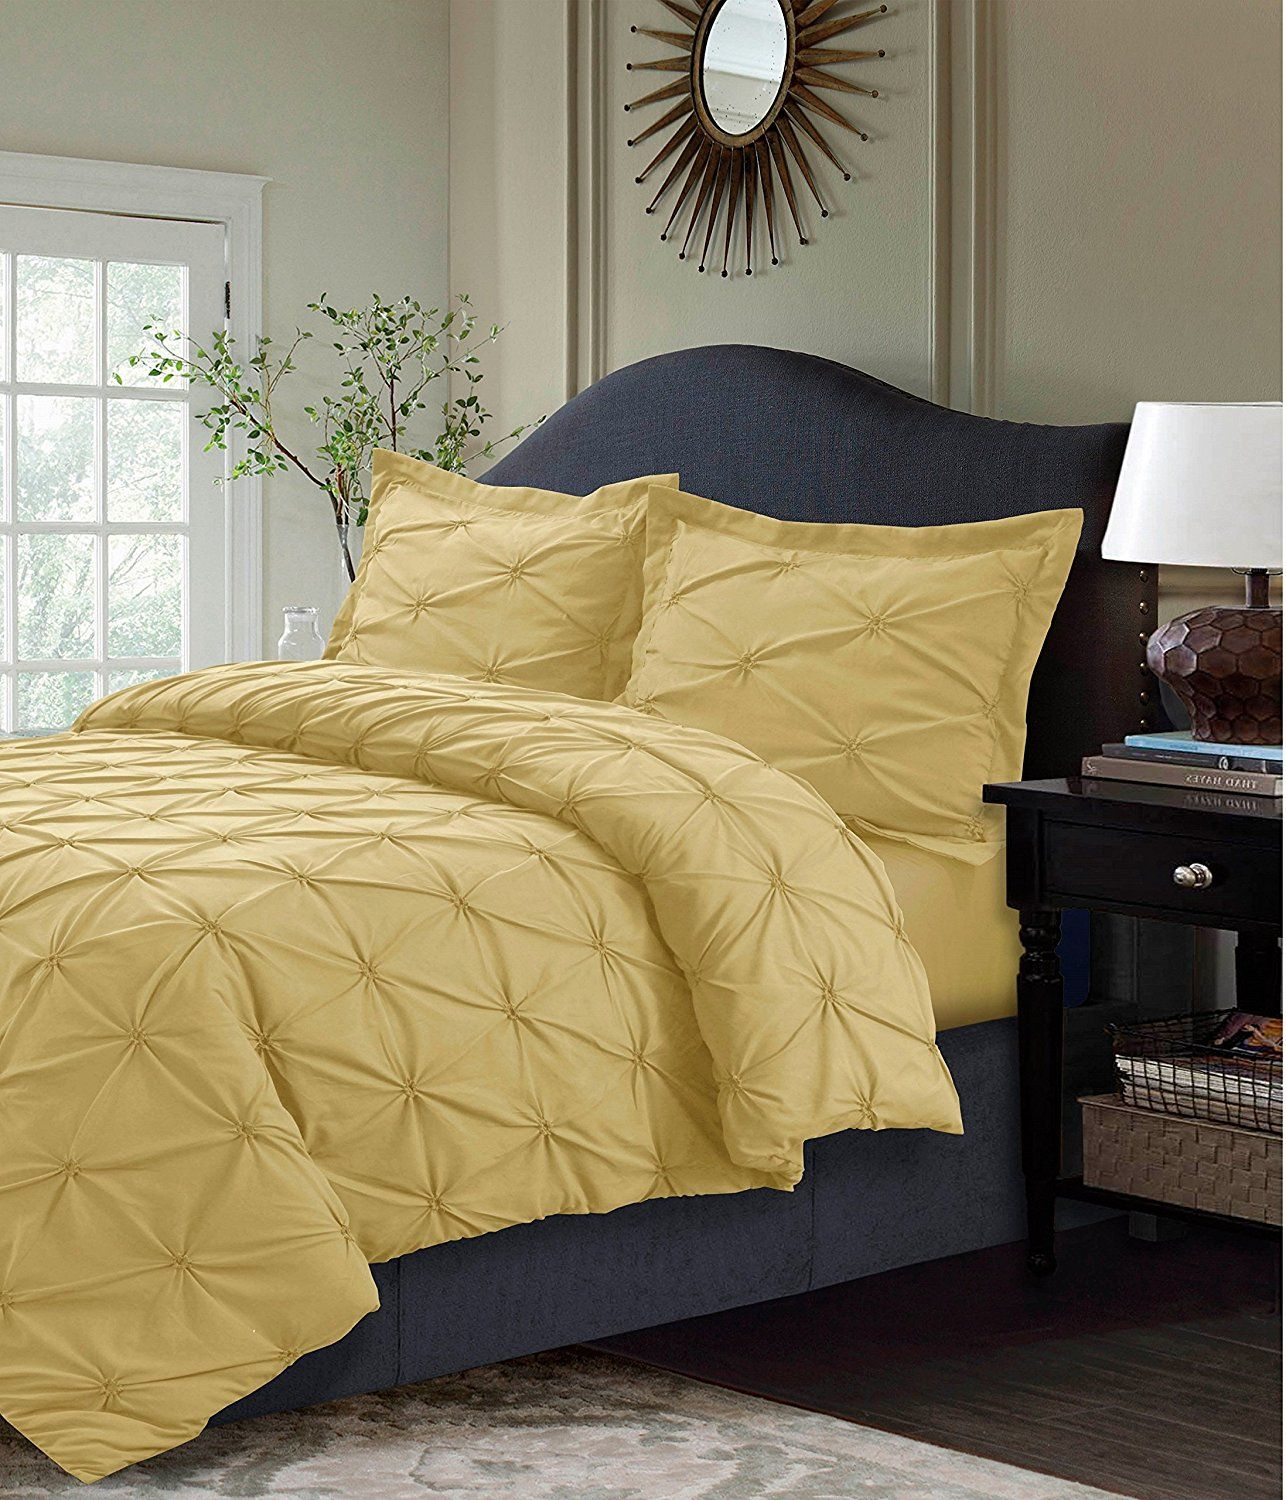 cover bedding pictures blue gray cheap fearsome damask solid yellow awesomeray queen covers crib pink king set bed coordinated awesome nursery full duvet andrey queenlue mainstays sets light quilt bag a andabyedding comforter in